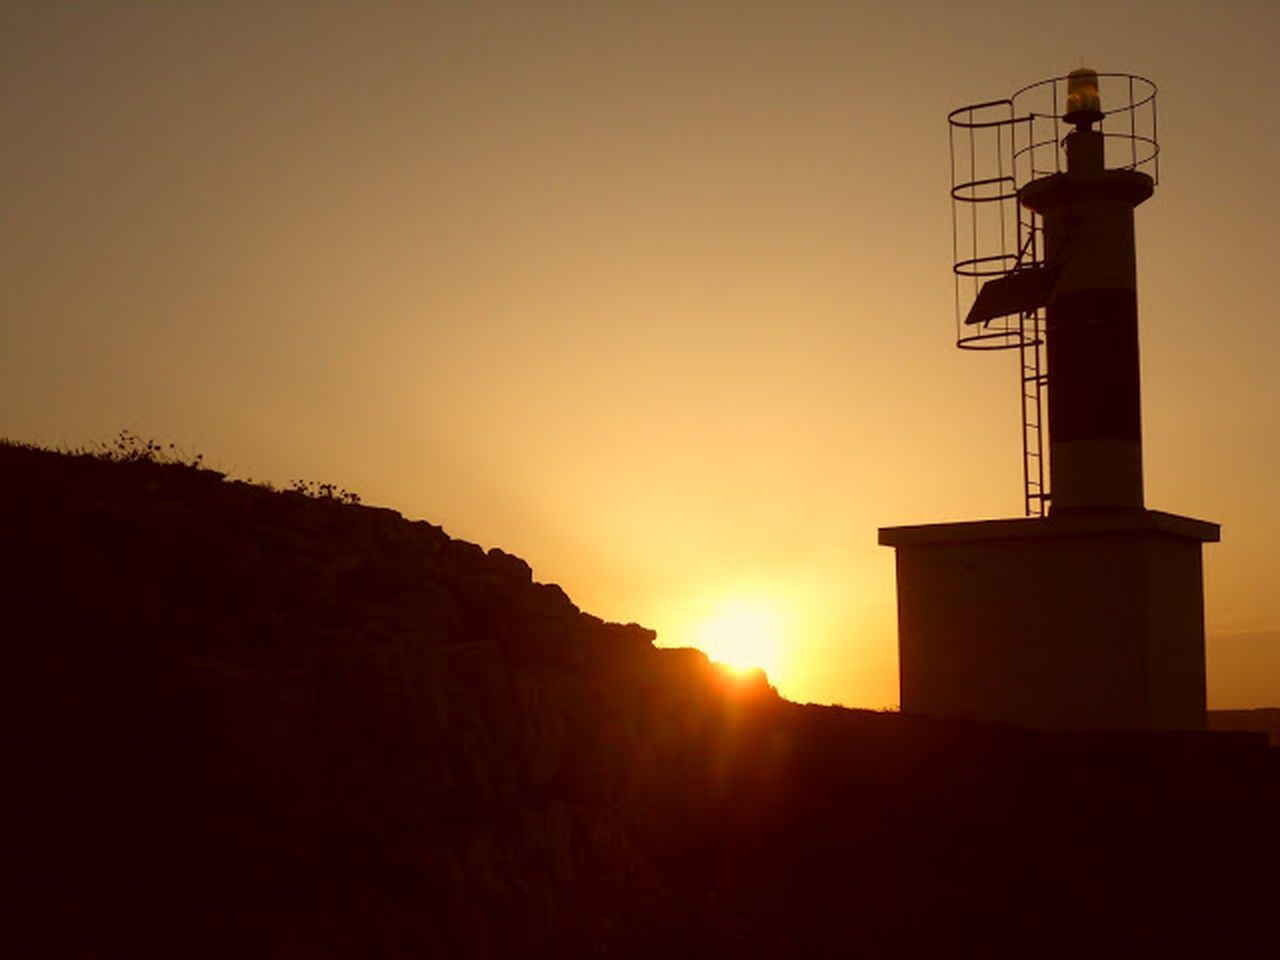 sunset, silhouette, outdoors, no people, sunlight, scenics, sky, nature, beauty in nature, architecture, day